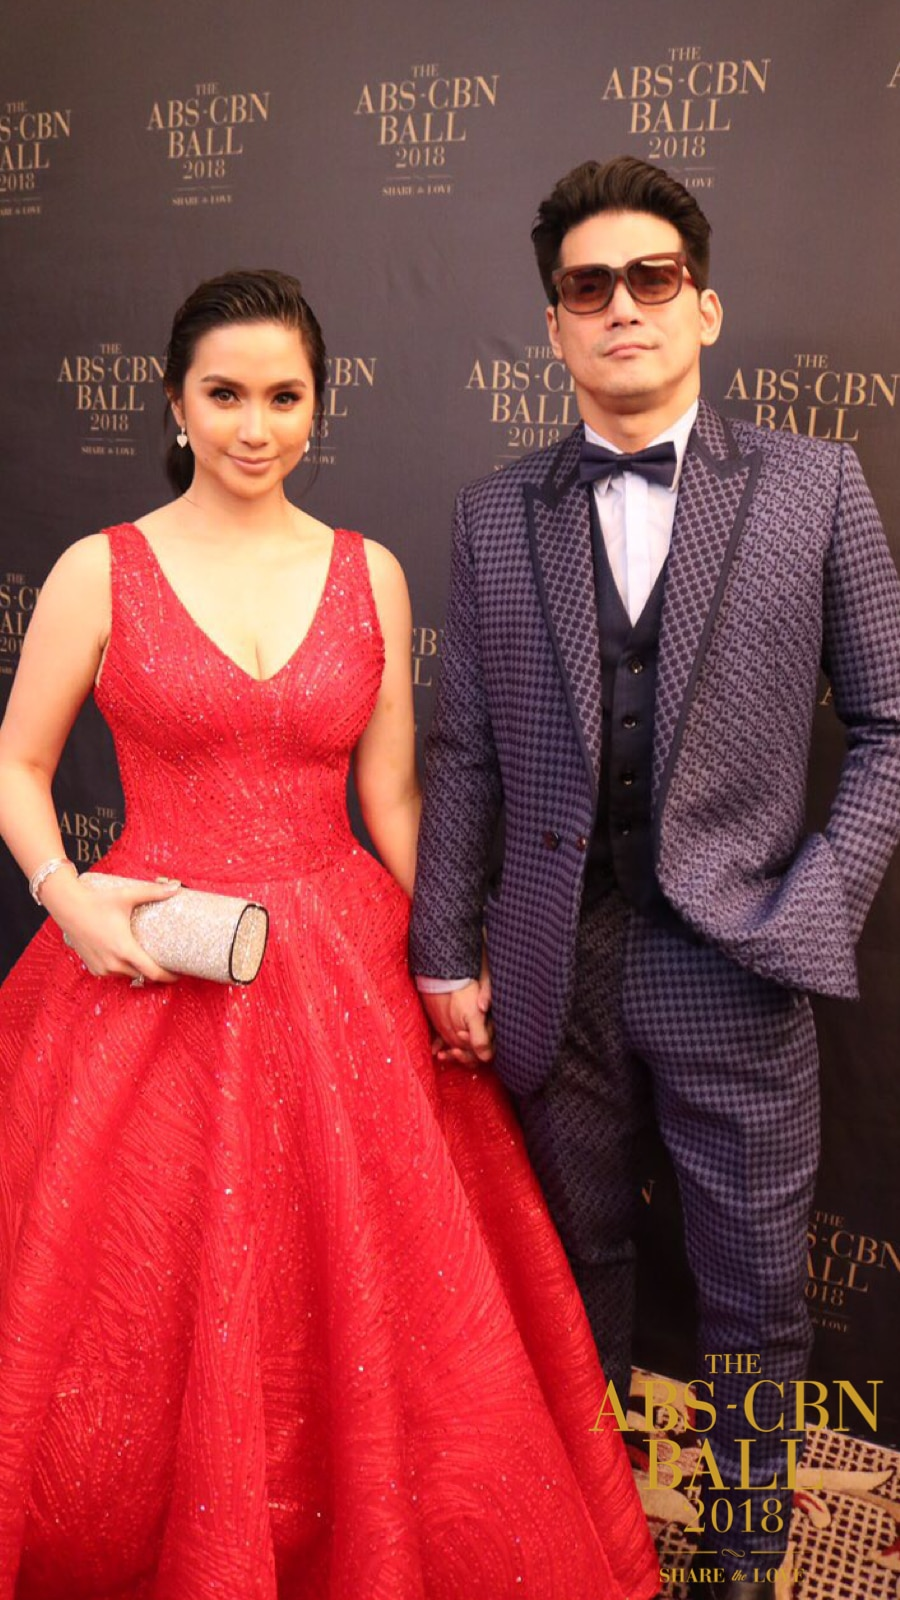 Scenes from the grand ABS-CBN Ball 2018 20